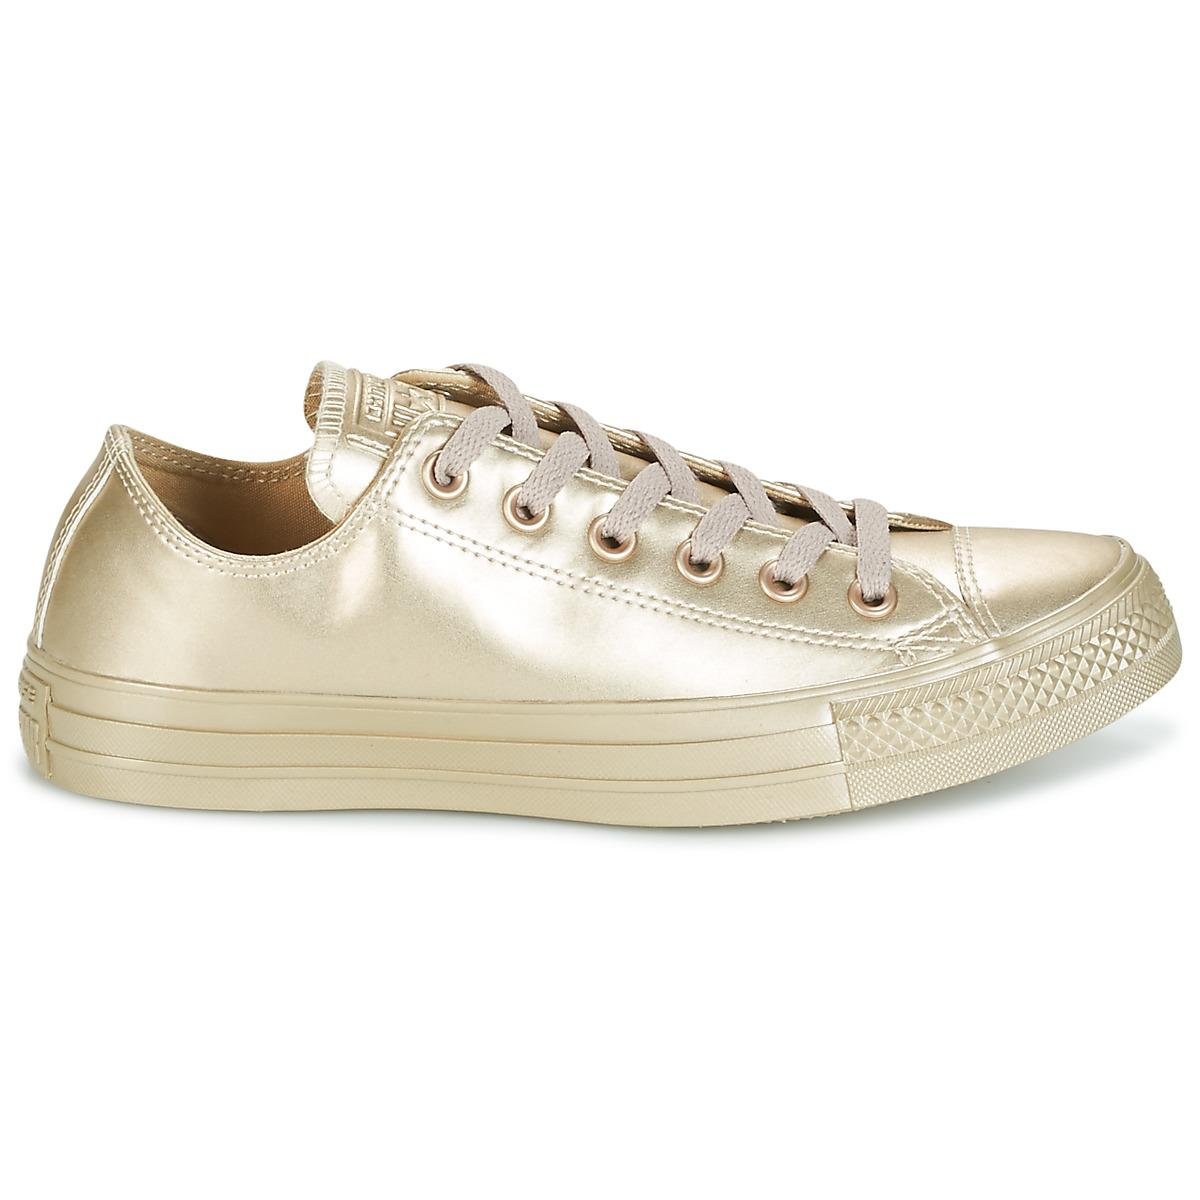 acc10bba22d4 Converse - Chuck Taylor All Star Liquid Metallic Ox Liquid Metallic Ox Gold  Women s Shoes (. View fullscreen